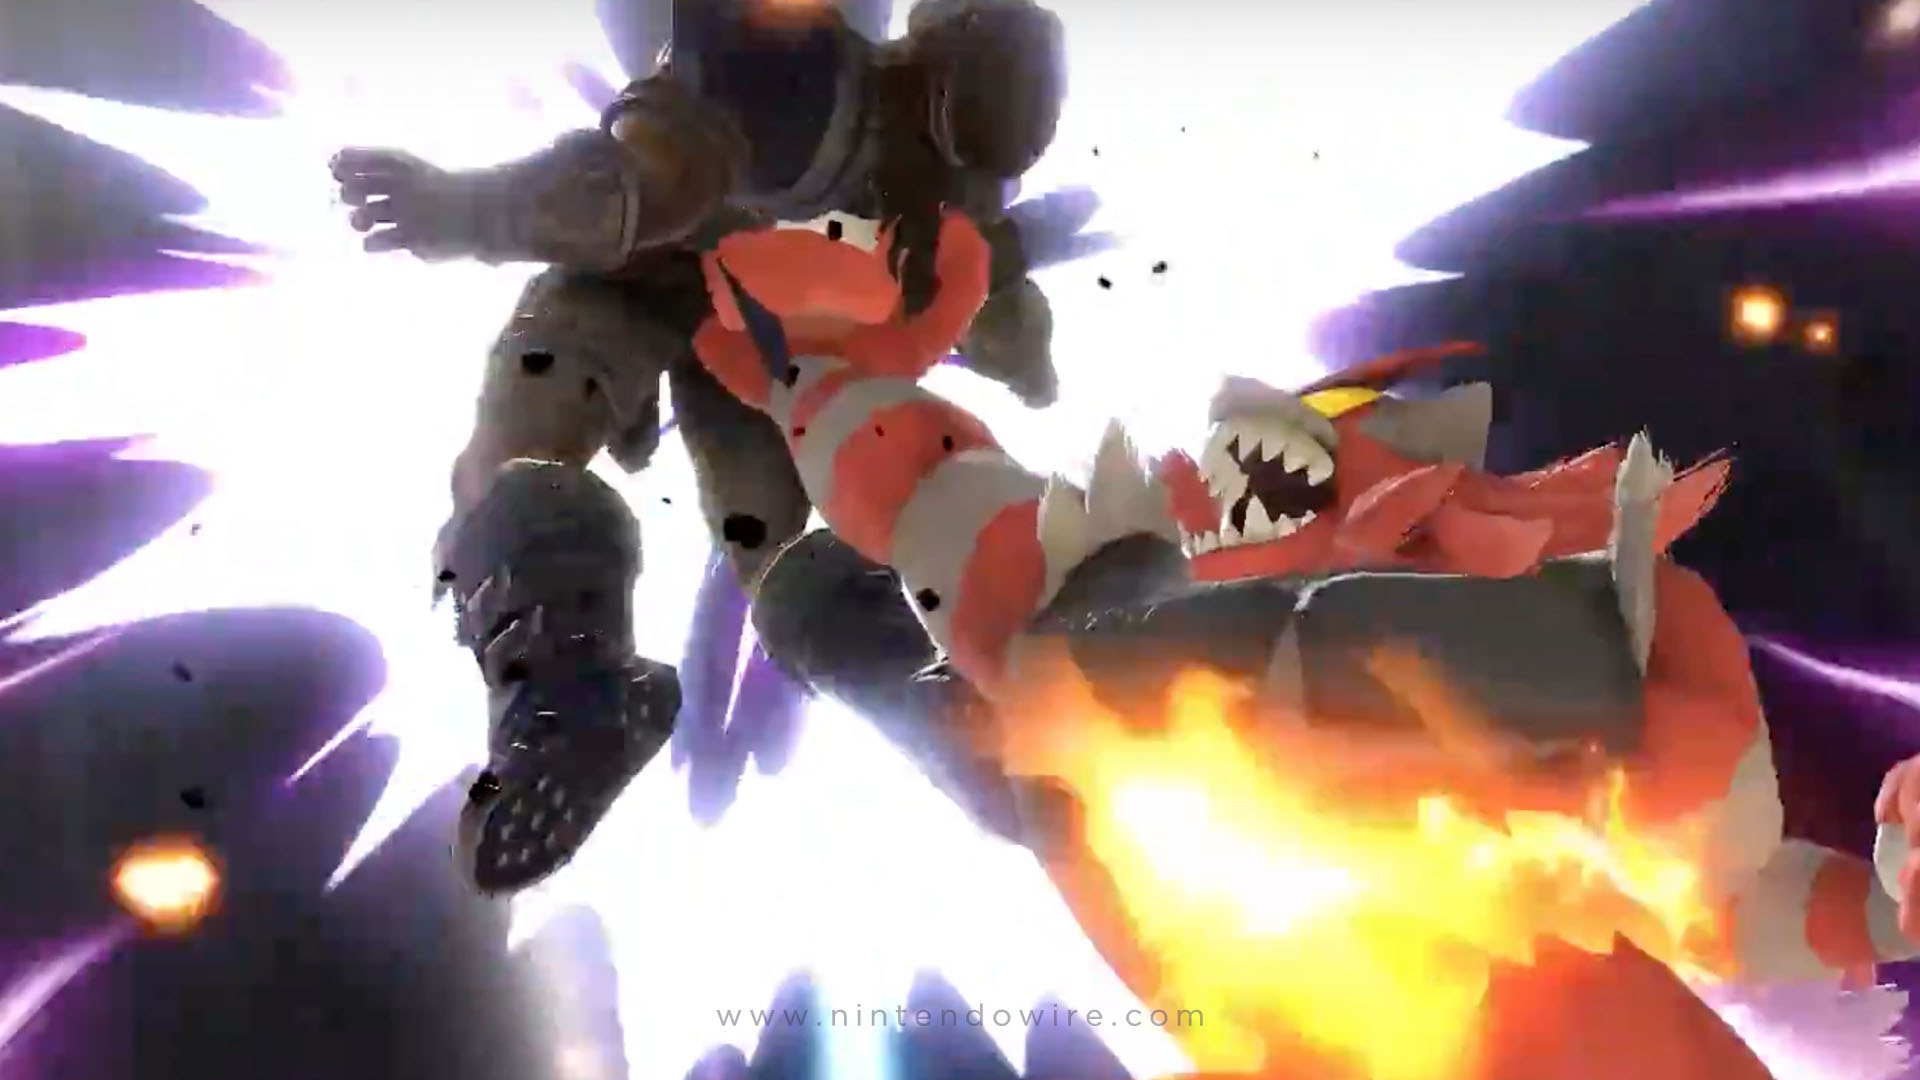 Hands On Super Smash Bros Ultimates New Fighters Each Offer Something Fresh Nintendo Wire